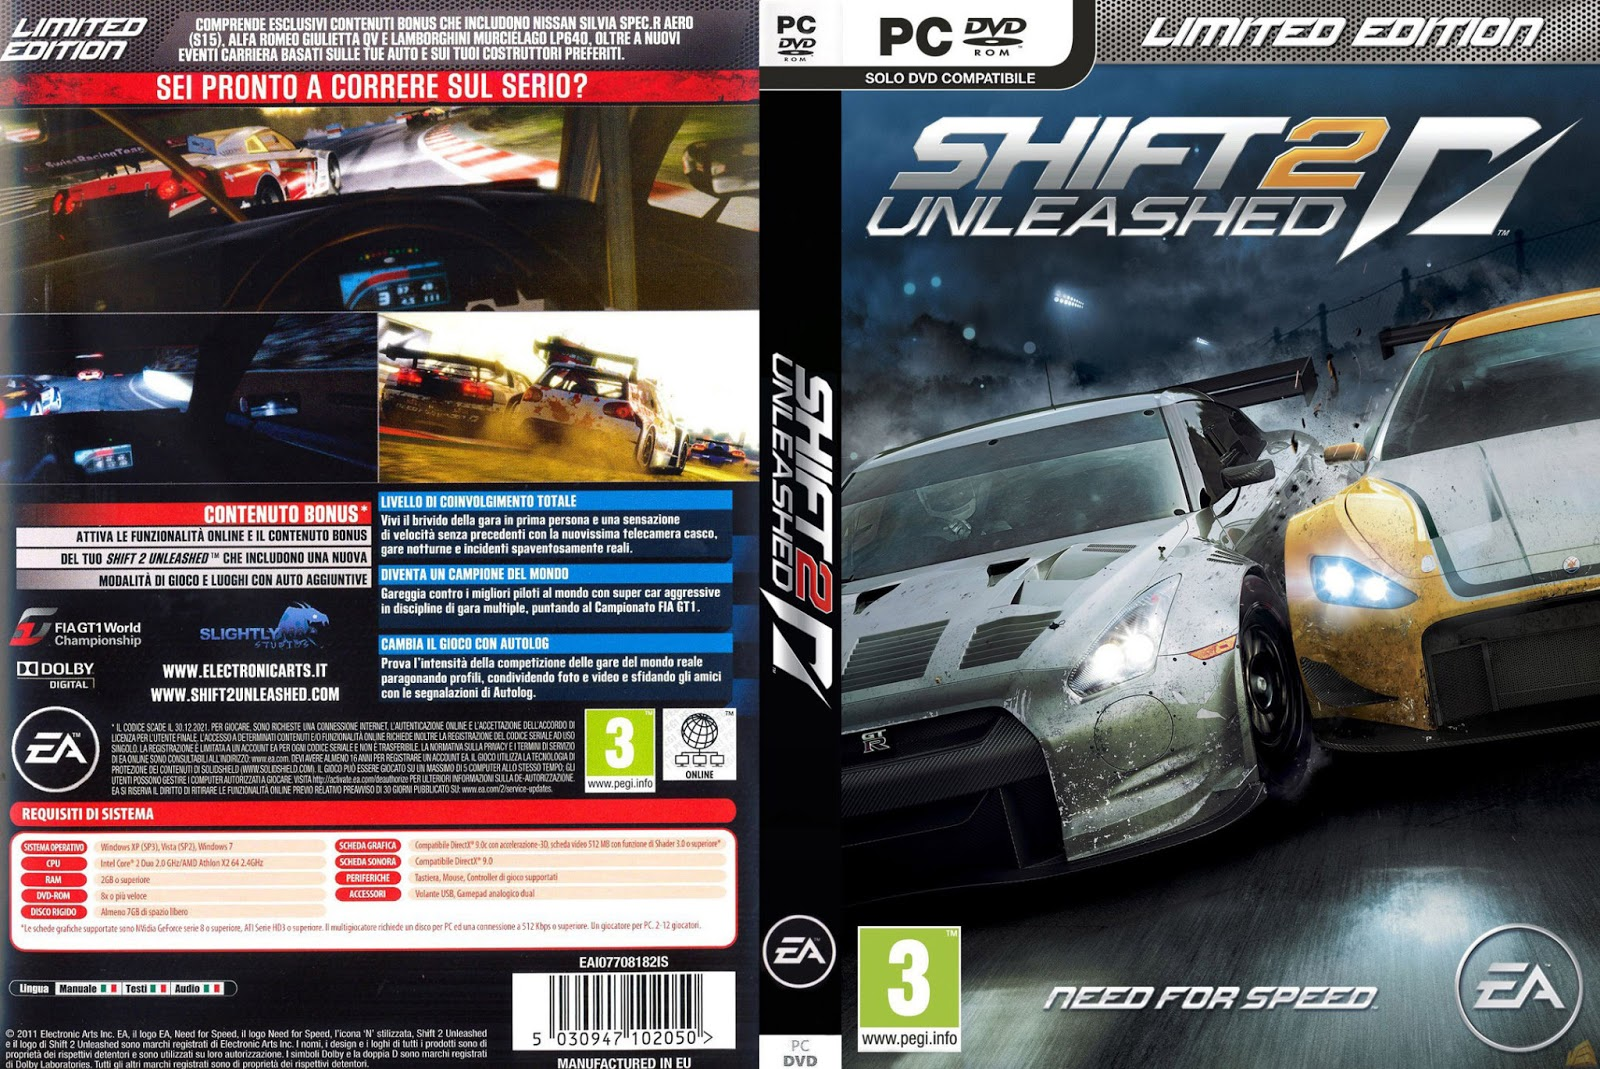 8 need for speed hot pursuit 2 8 need for speed hot pursuit 2 free full game; 8 need for speed hot pursuit 2